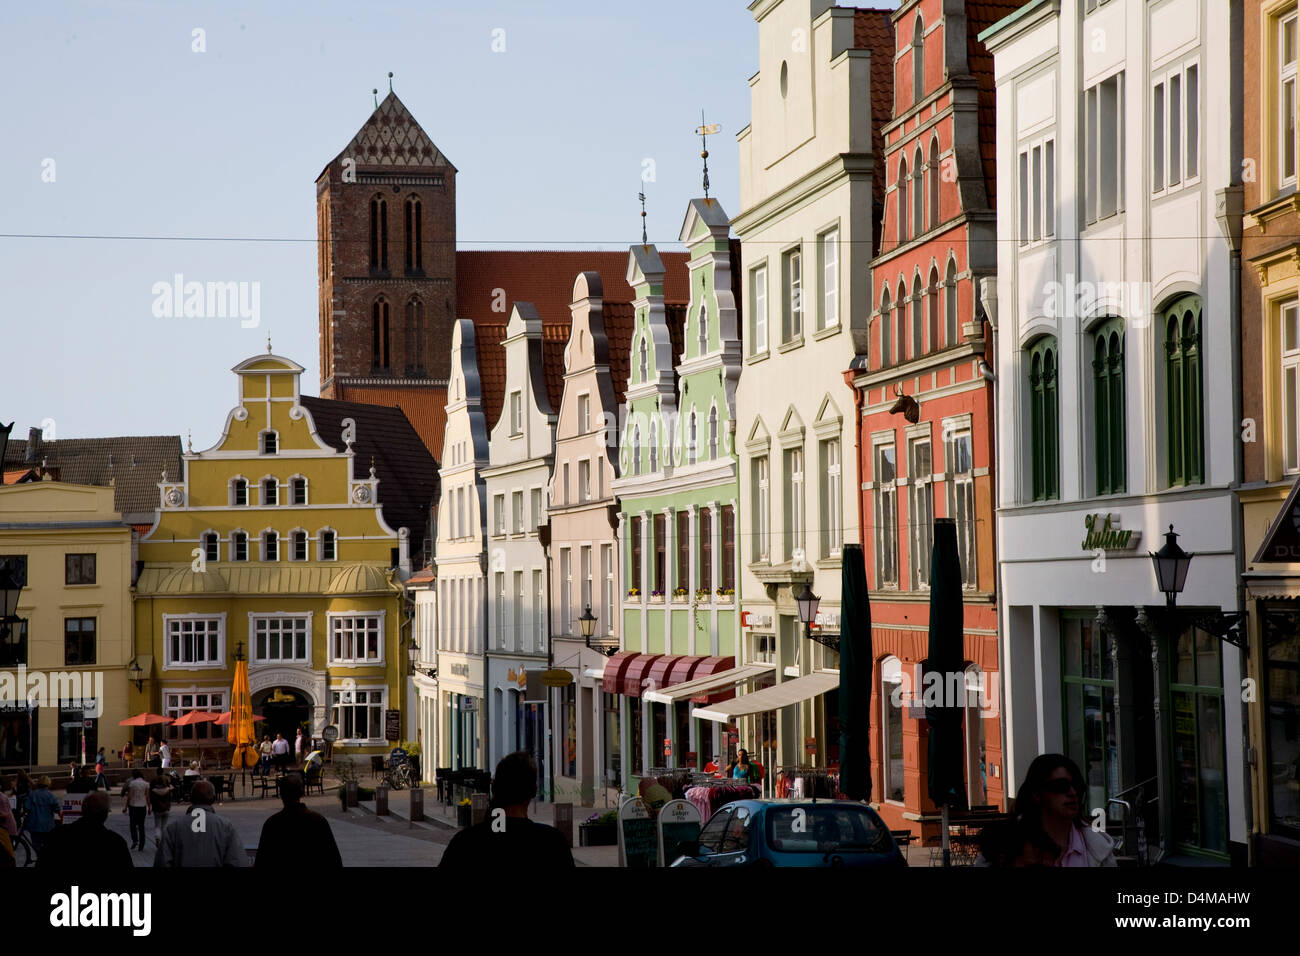 Wismar, Germany, the Kraemer Street in the historic town of Wismar Stock Photo